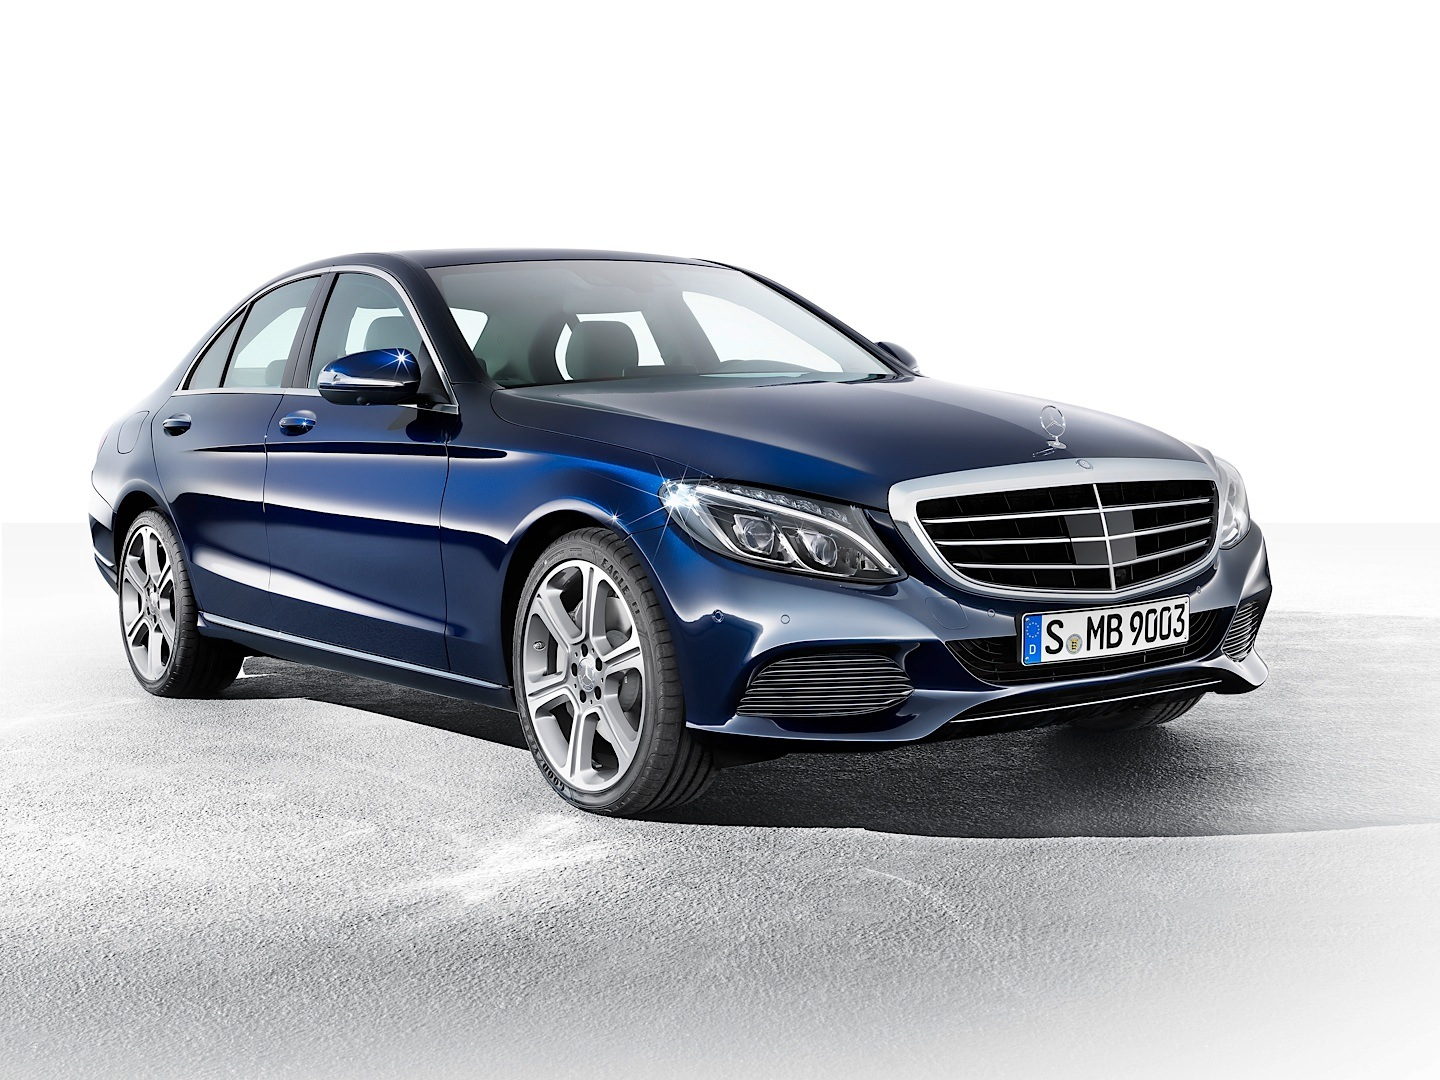 check-out-the-first-official-footage-with-the-new-c-class-w205-video-1080p-8